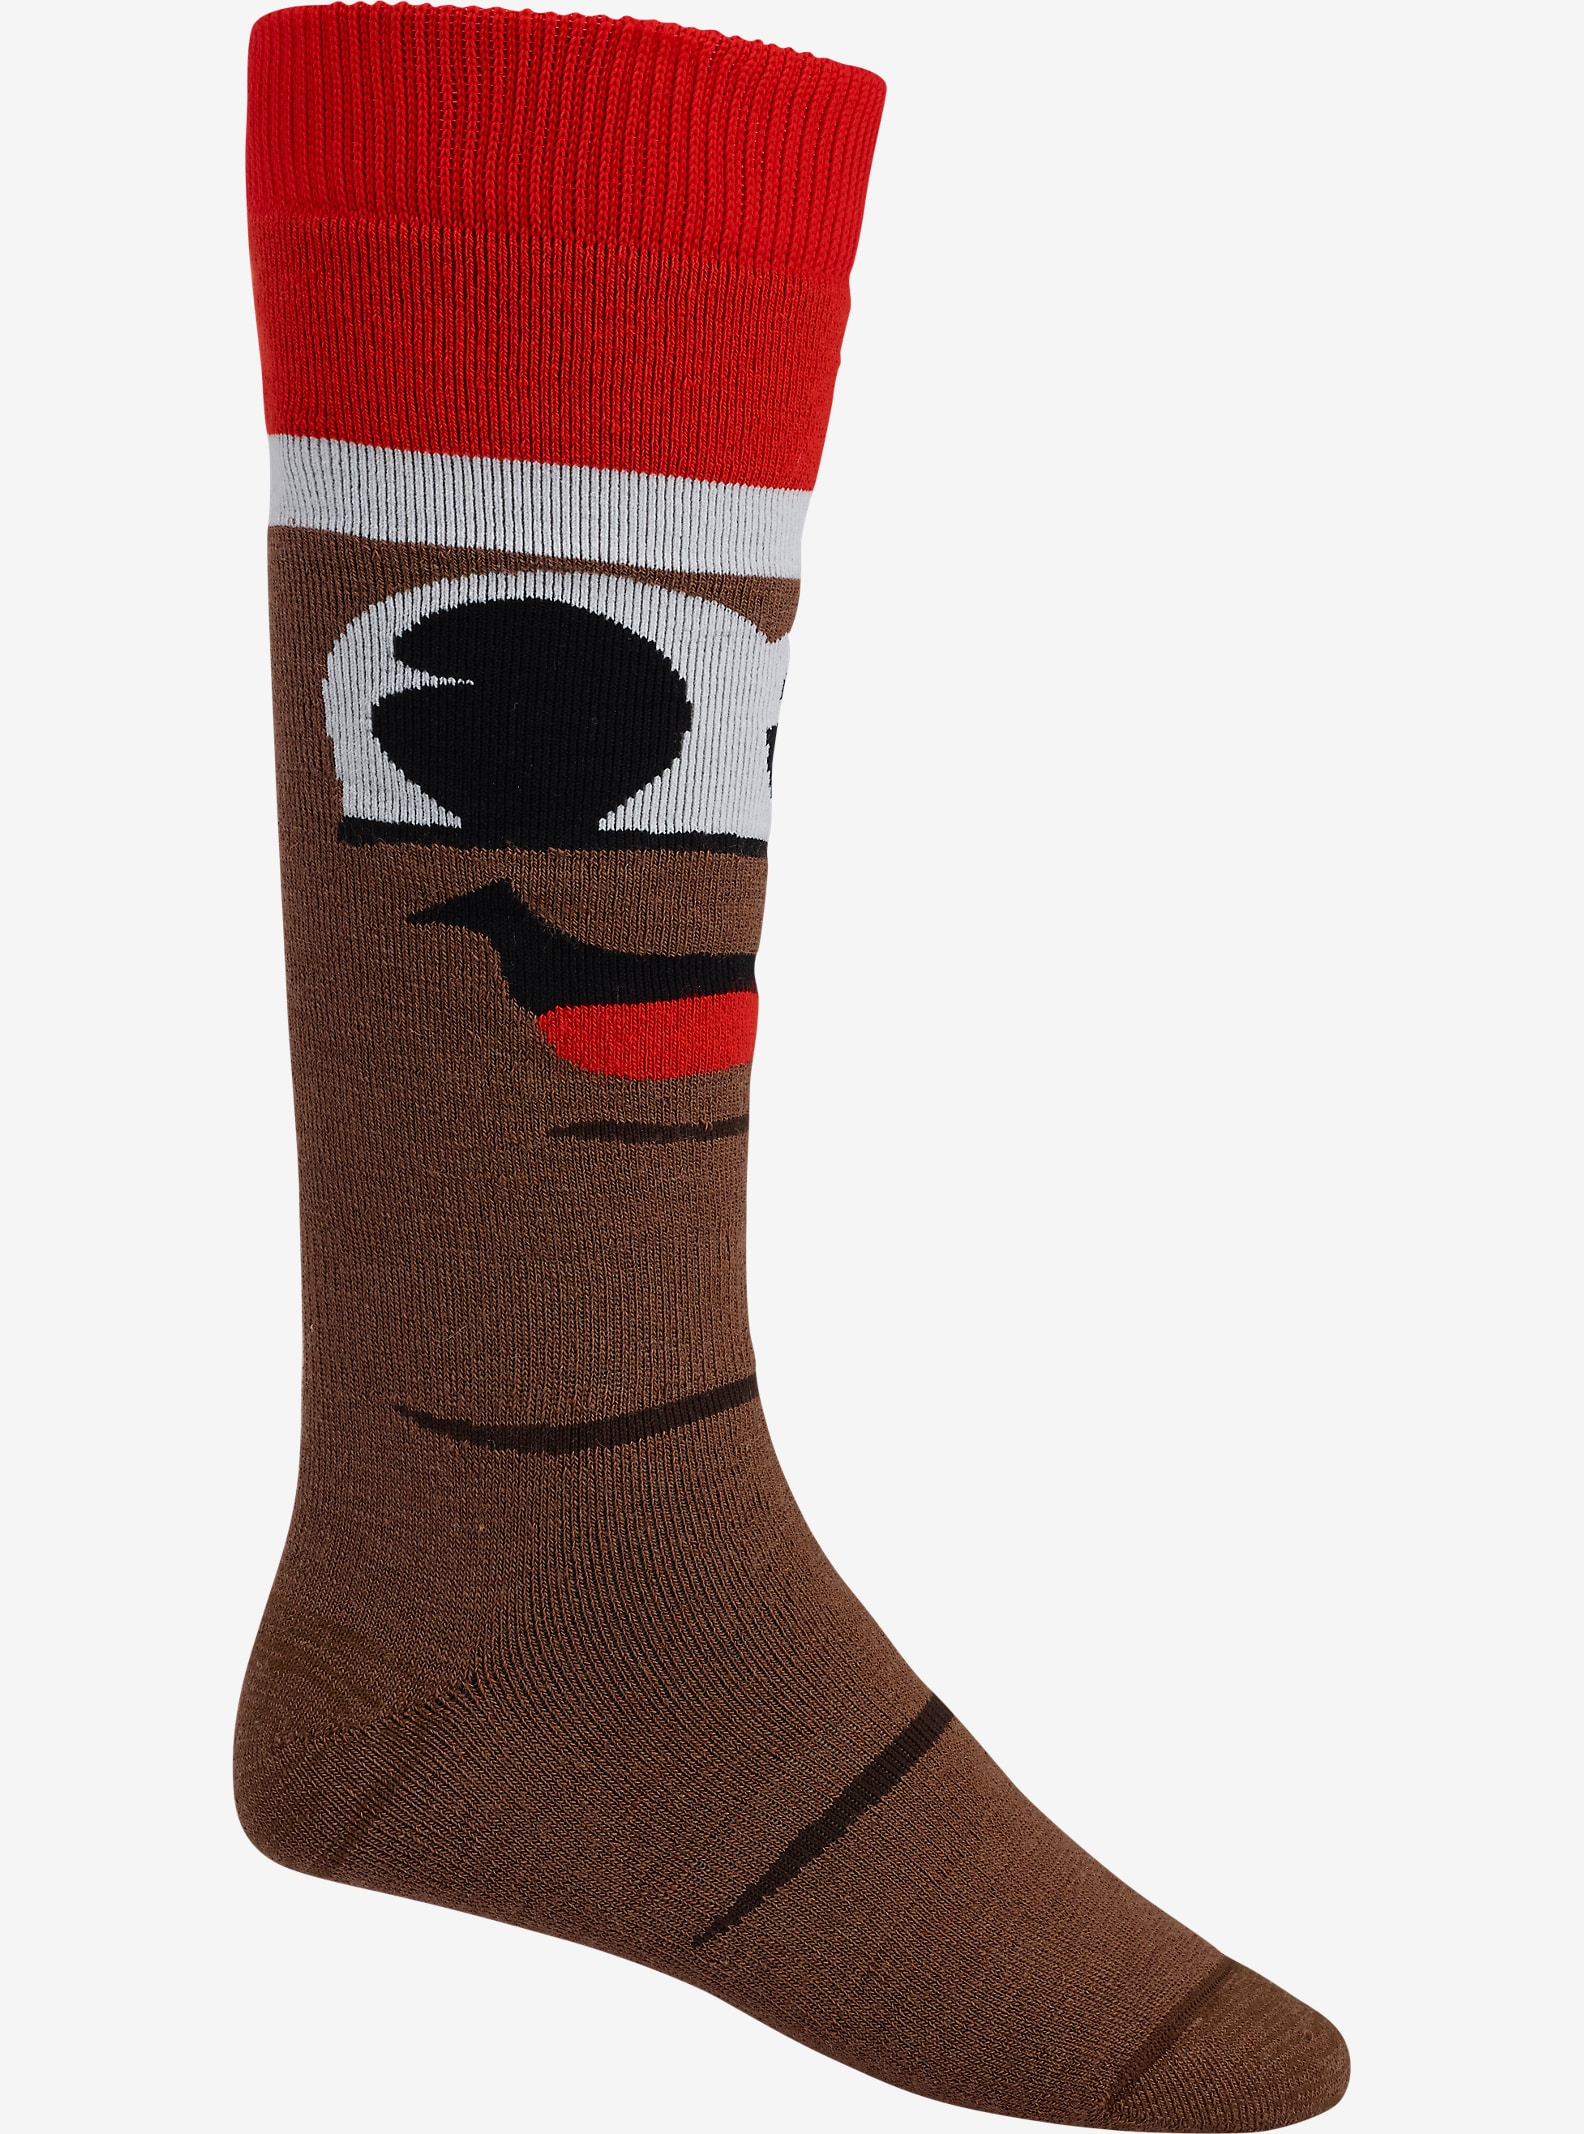 Burton x South Park Mr. Hankey Party Sock shown in Mr. Hankey